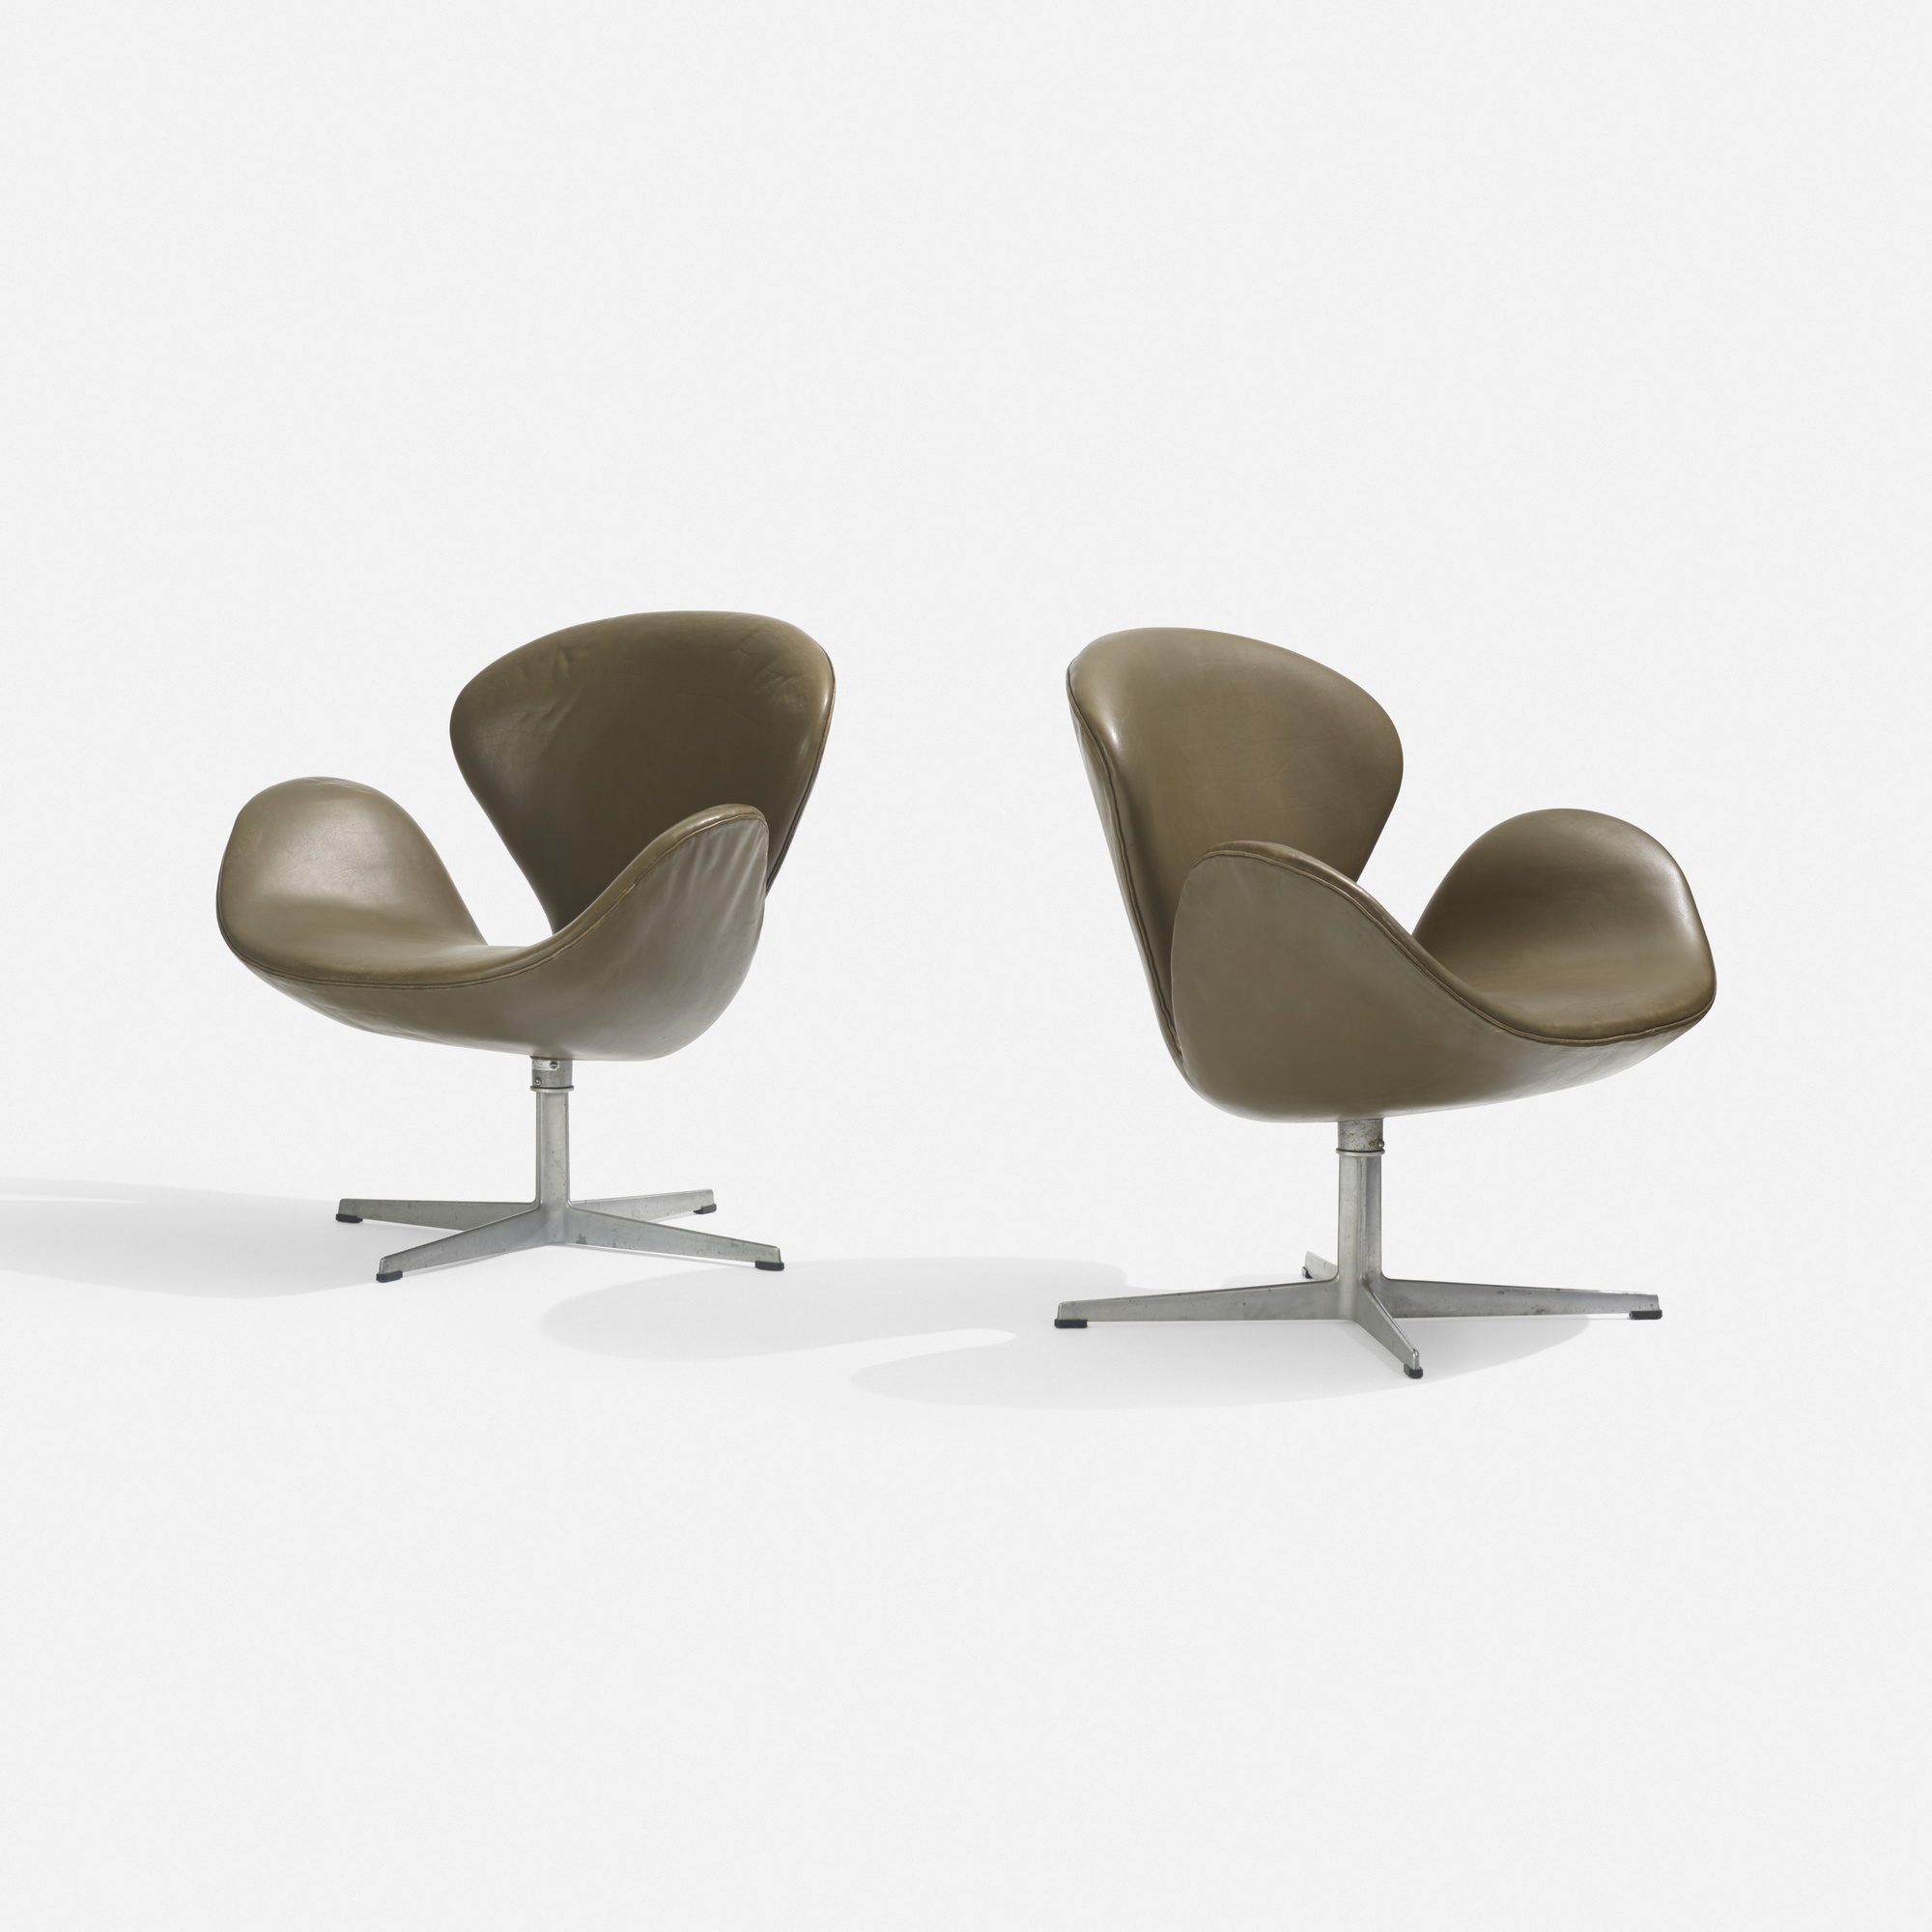 204 Arne Jacobsen Swan Chairs Pair Scandinavian Design 18